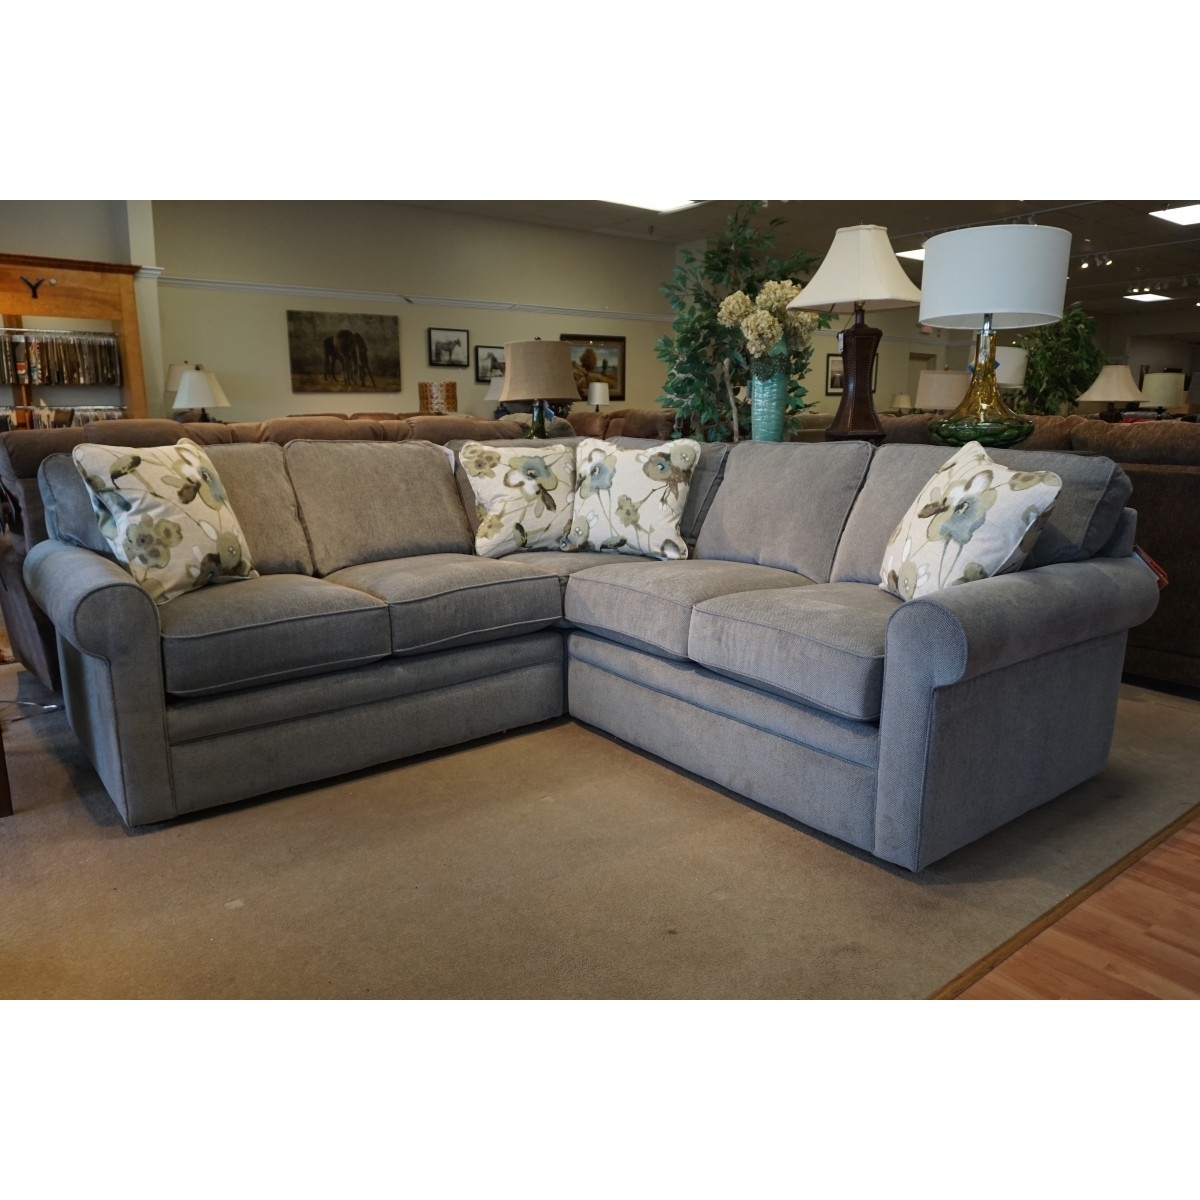 Brilliant Sectional Sofas Lazy Boy Mediasupload Com Within Sofa within Sectional Sofas at Lazy Boy (Image 5 of 15)